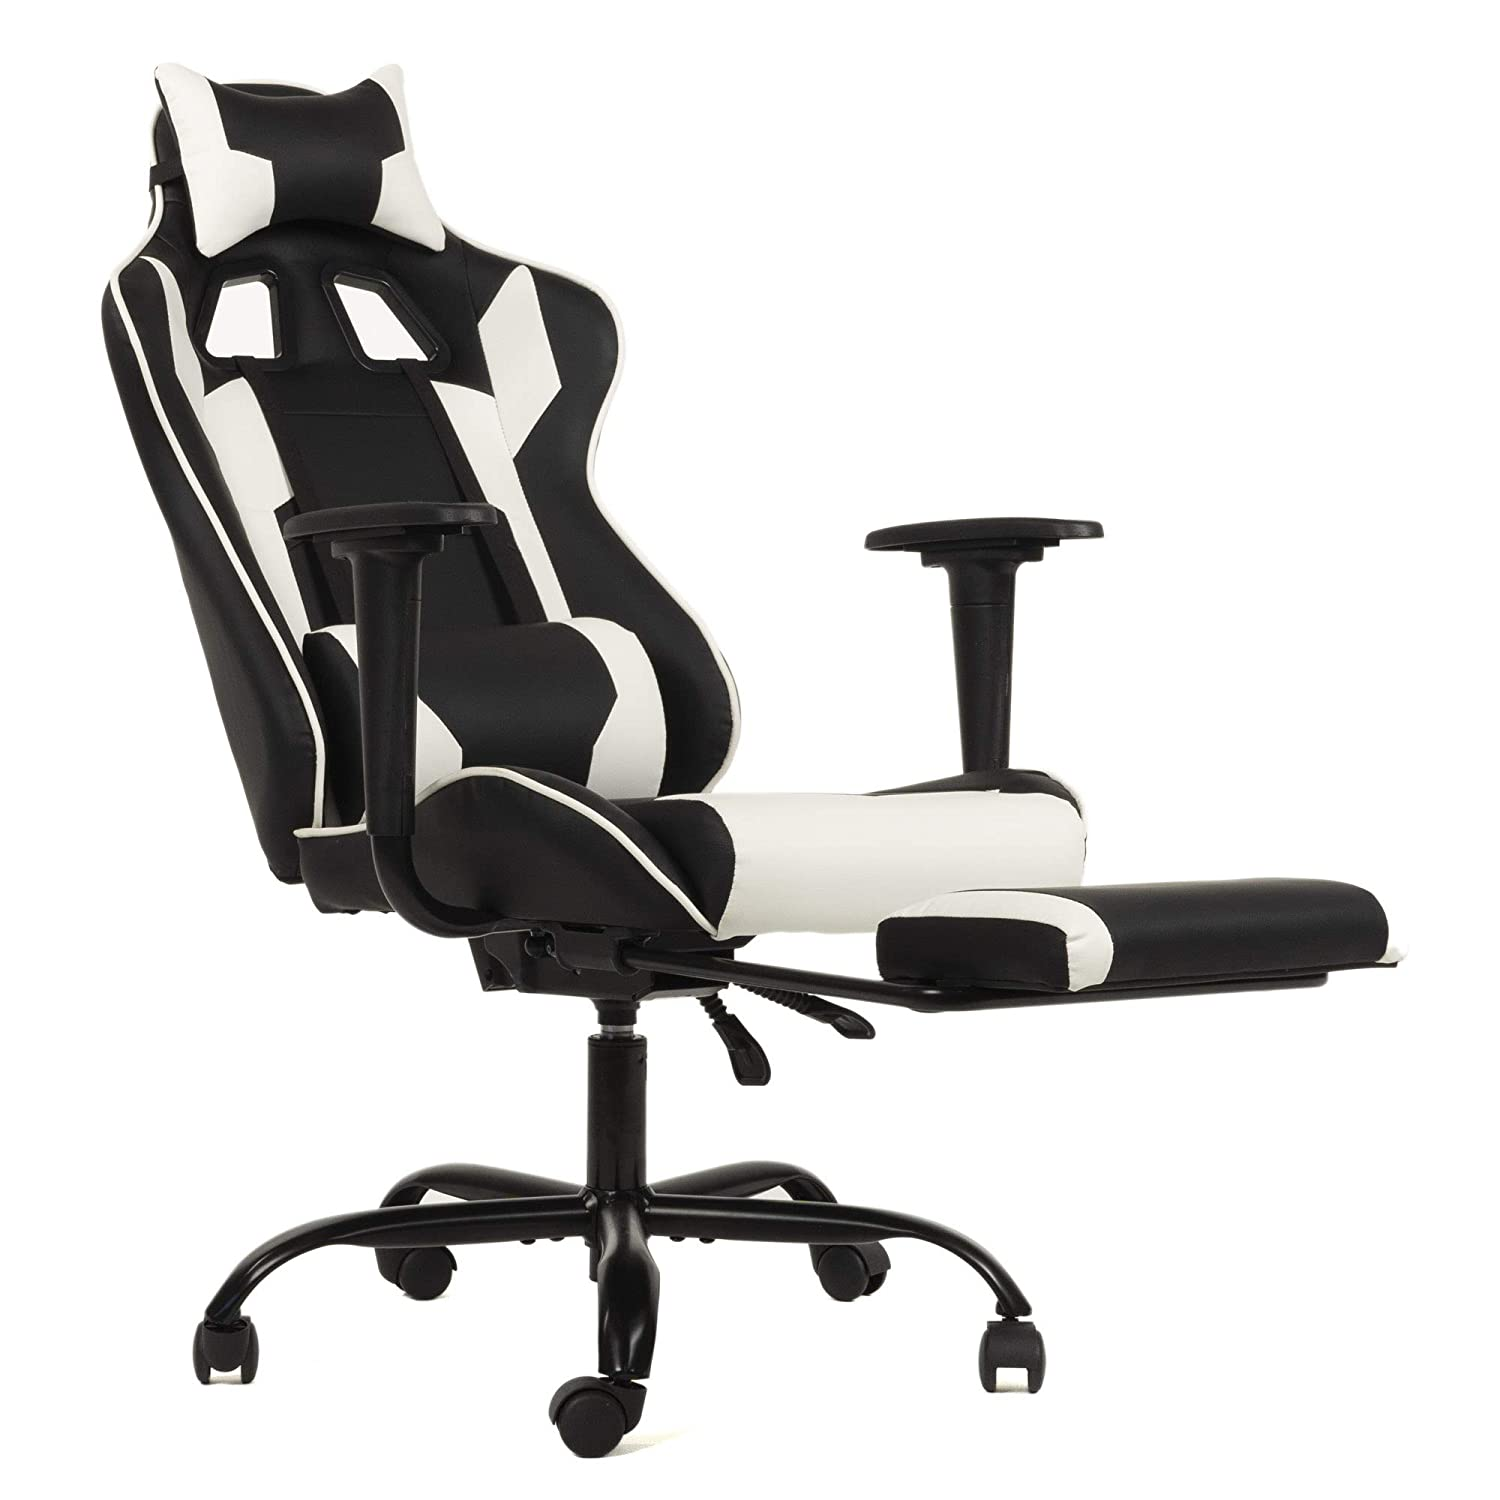 Ergonomic Office Chair PC Gaming Chair Desk Chair Executive PU Leather Computer Chair Lumbar Support with Footrest Modern Task Rolling Swivel Chair for Women, Men White